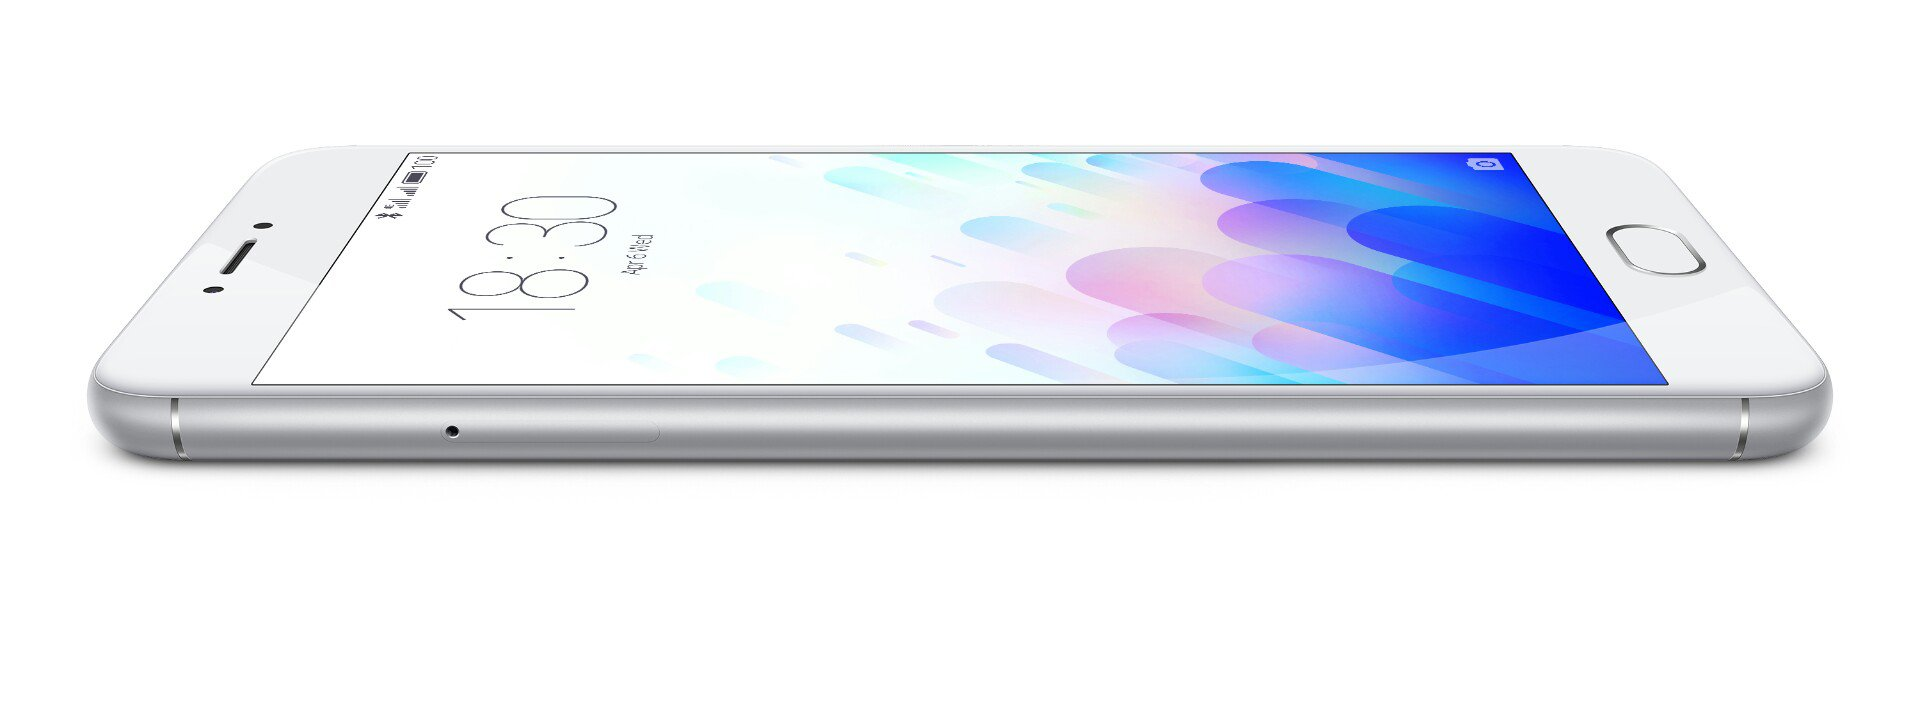 Смартфон meizu m3 note 32gb обзор - bc